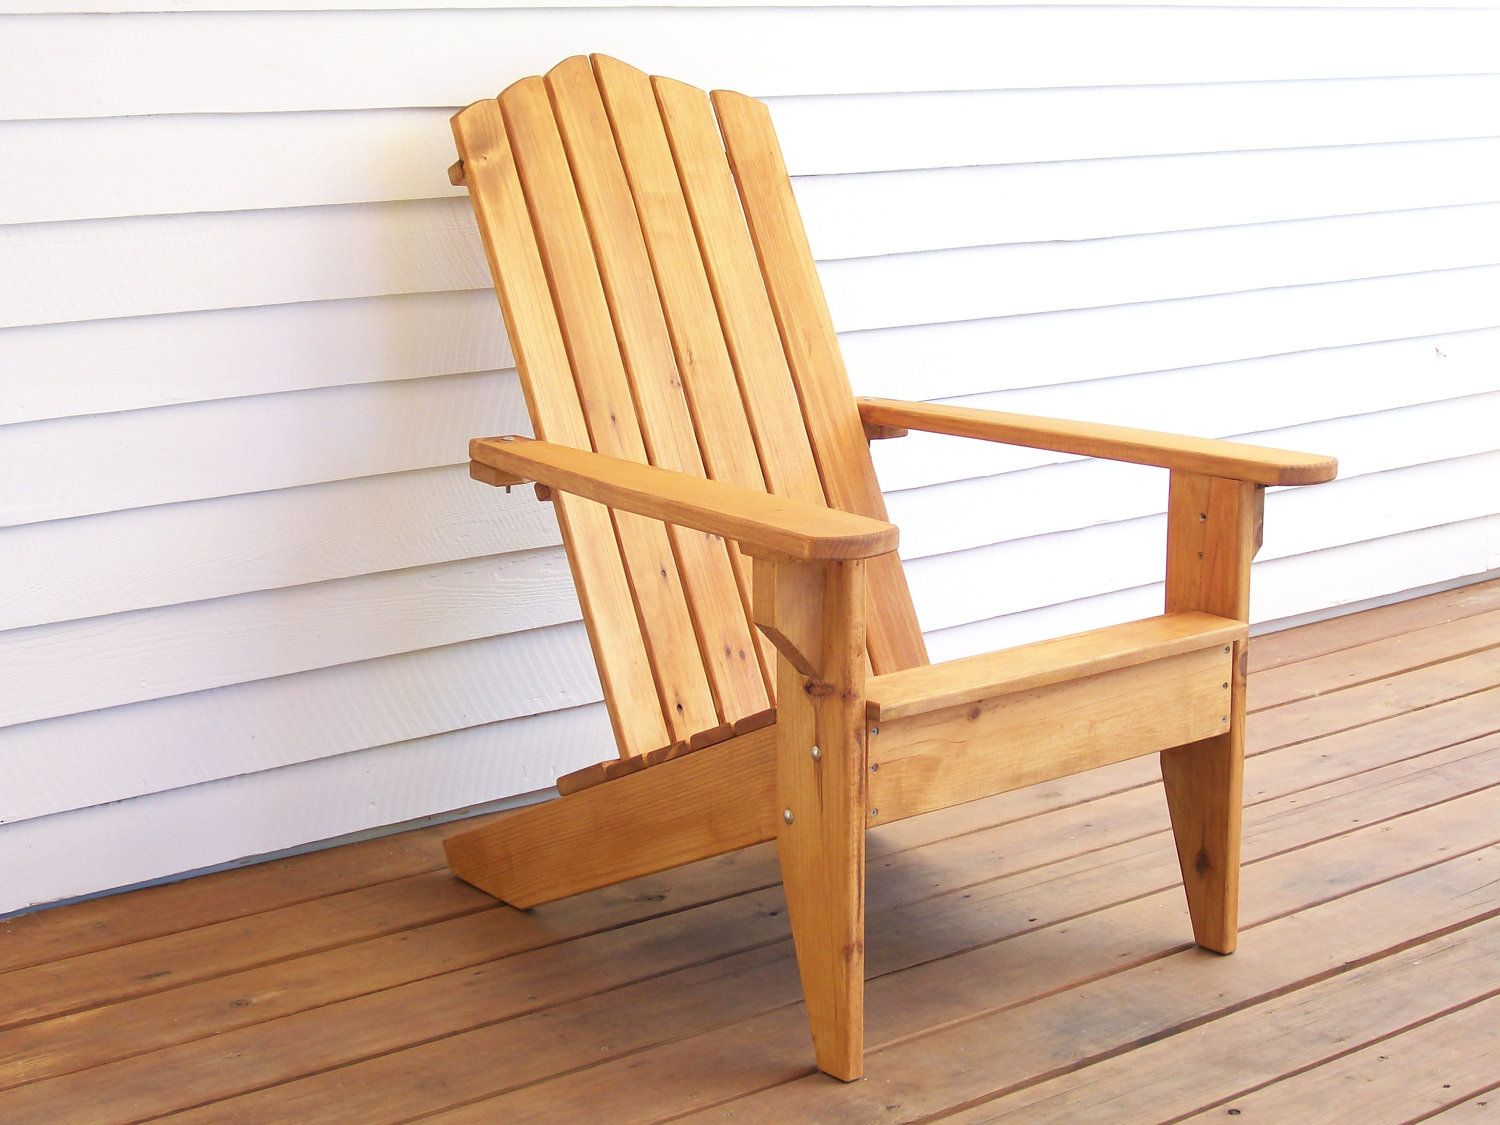 Attractive Adirondack Wood Chair, Adirondack Furniture, Outdoor Wood Furniture, Wood  Deck Furniture, Patio Wood Furniture, Deck Chair, Garden Chair